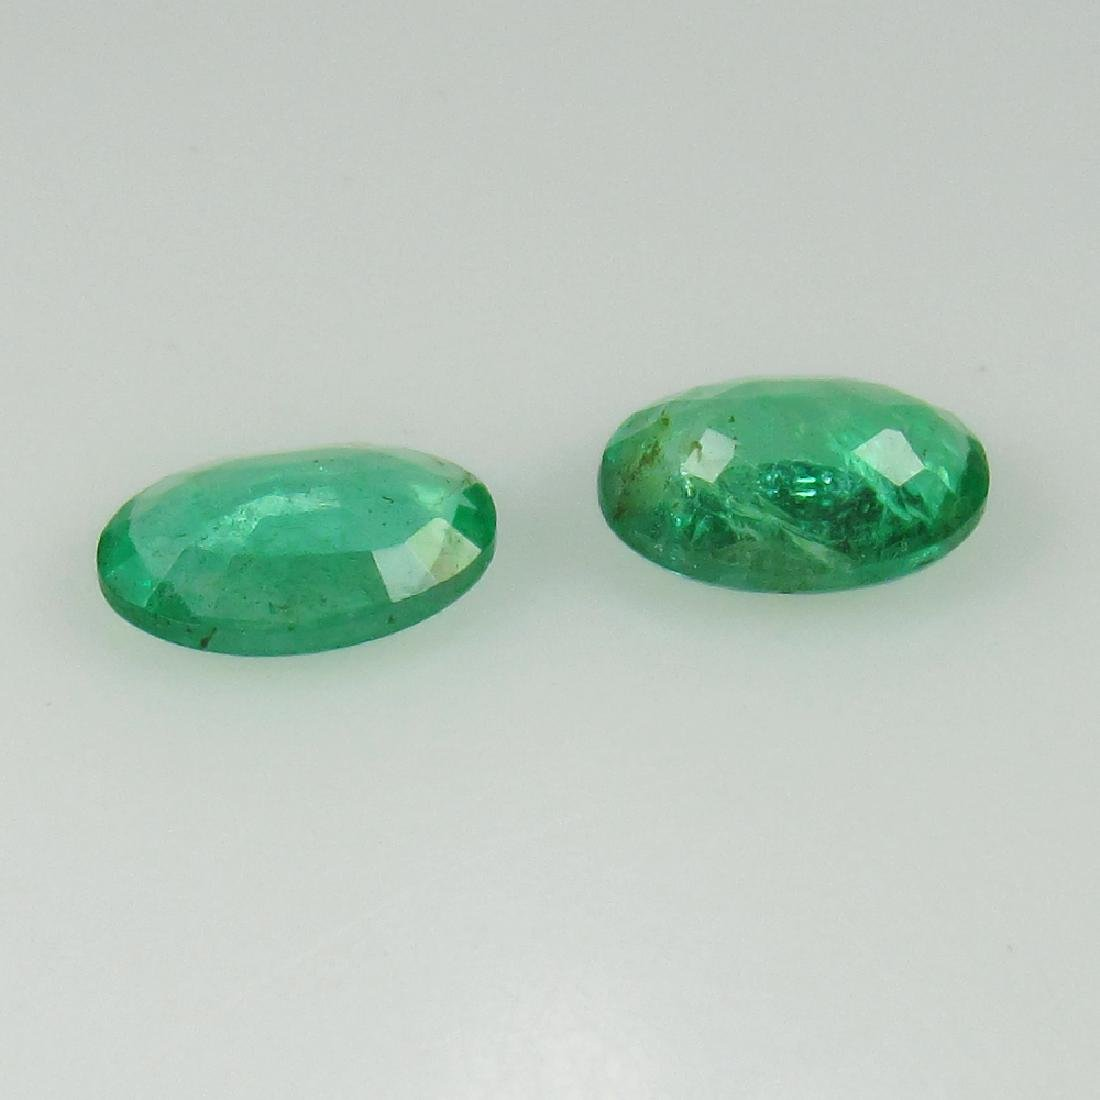 0.59 Ct Genuine Zambian Emerald Oval Pair - 2